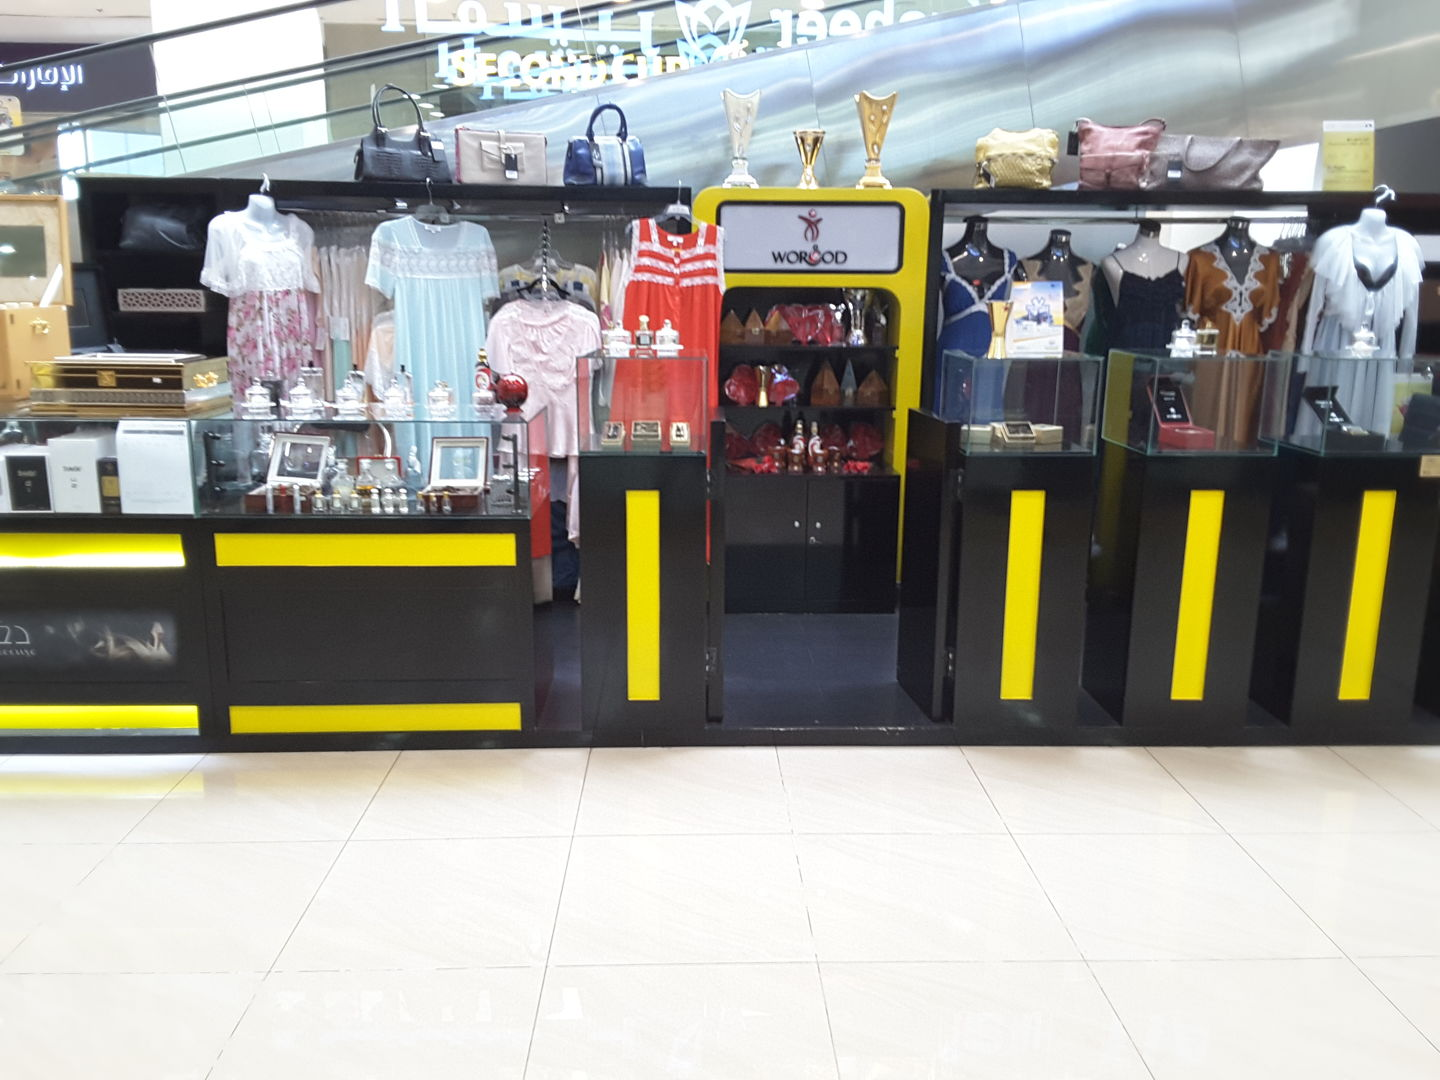 HiDubai-business-worood-perfumes-incense-shopping-apparel-al-barsha-2-dubai-2